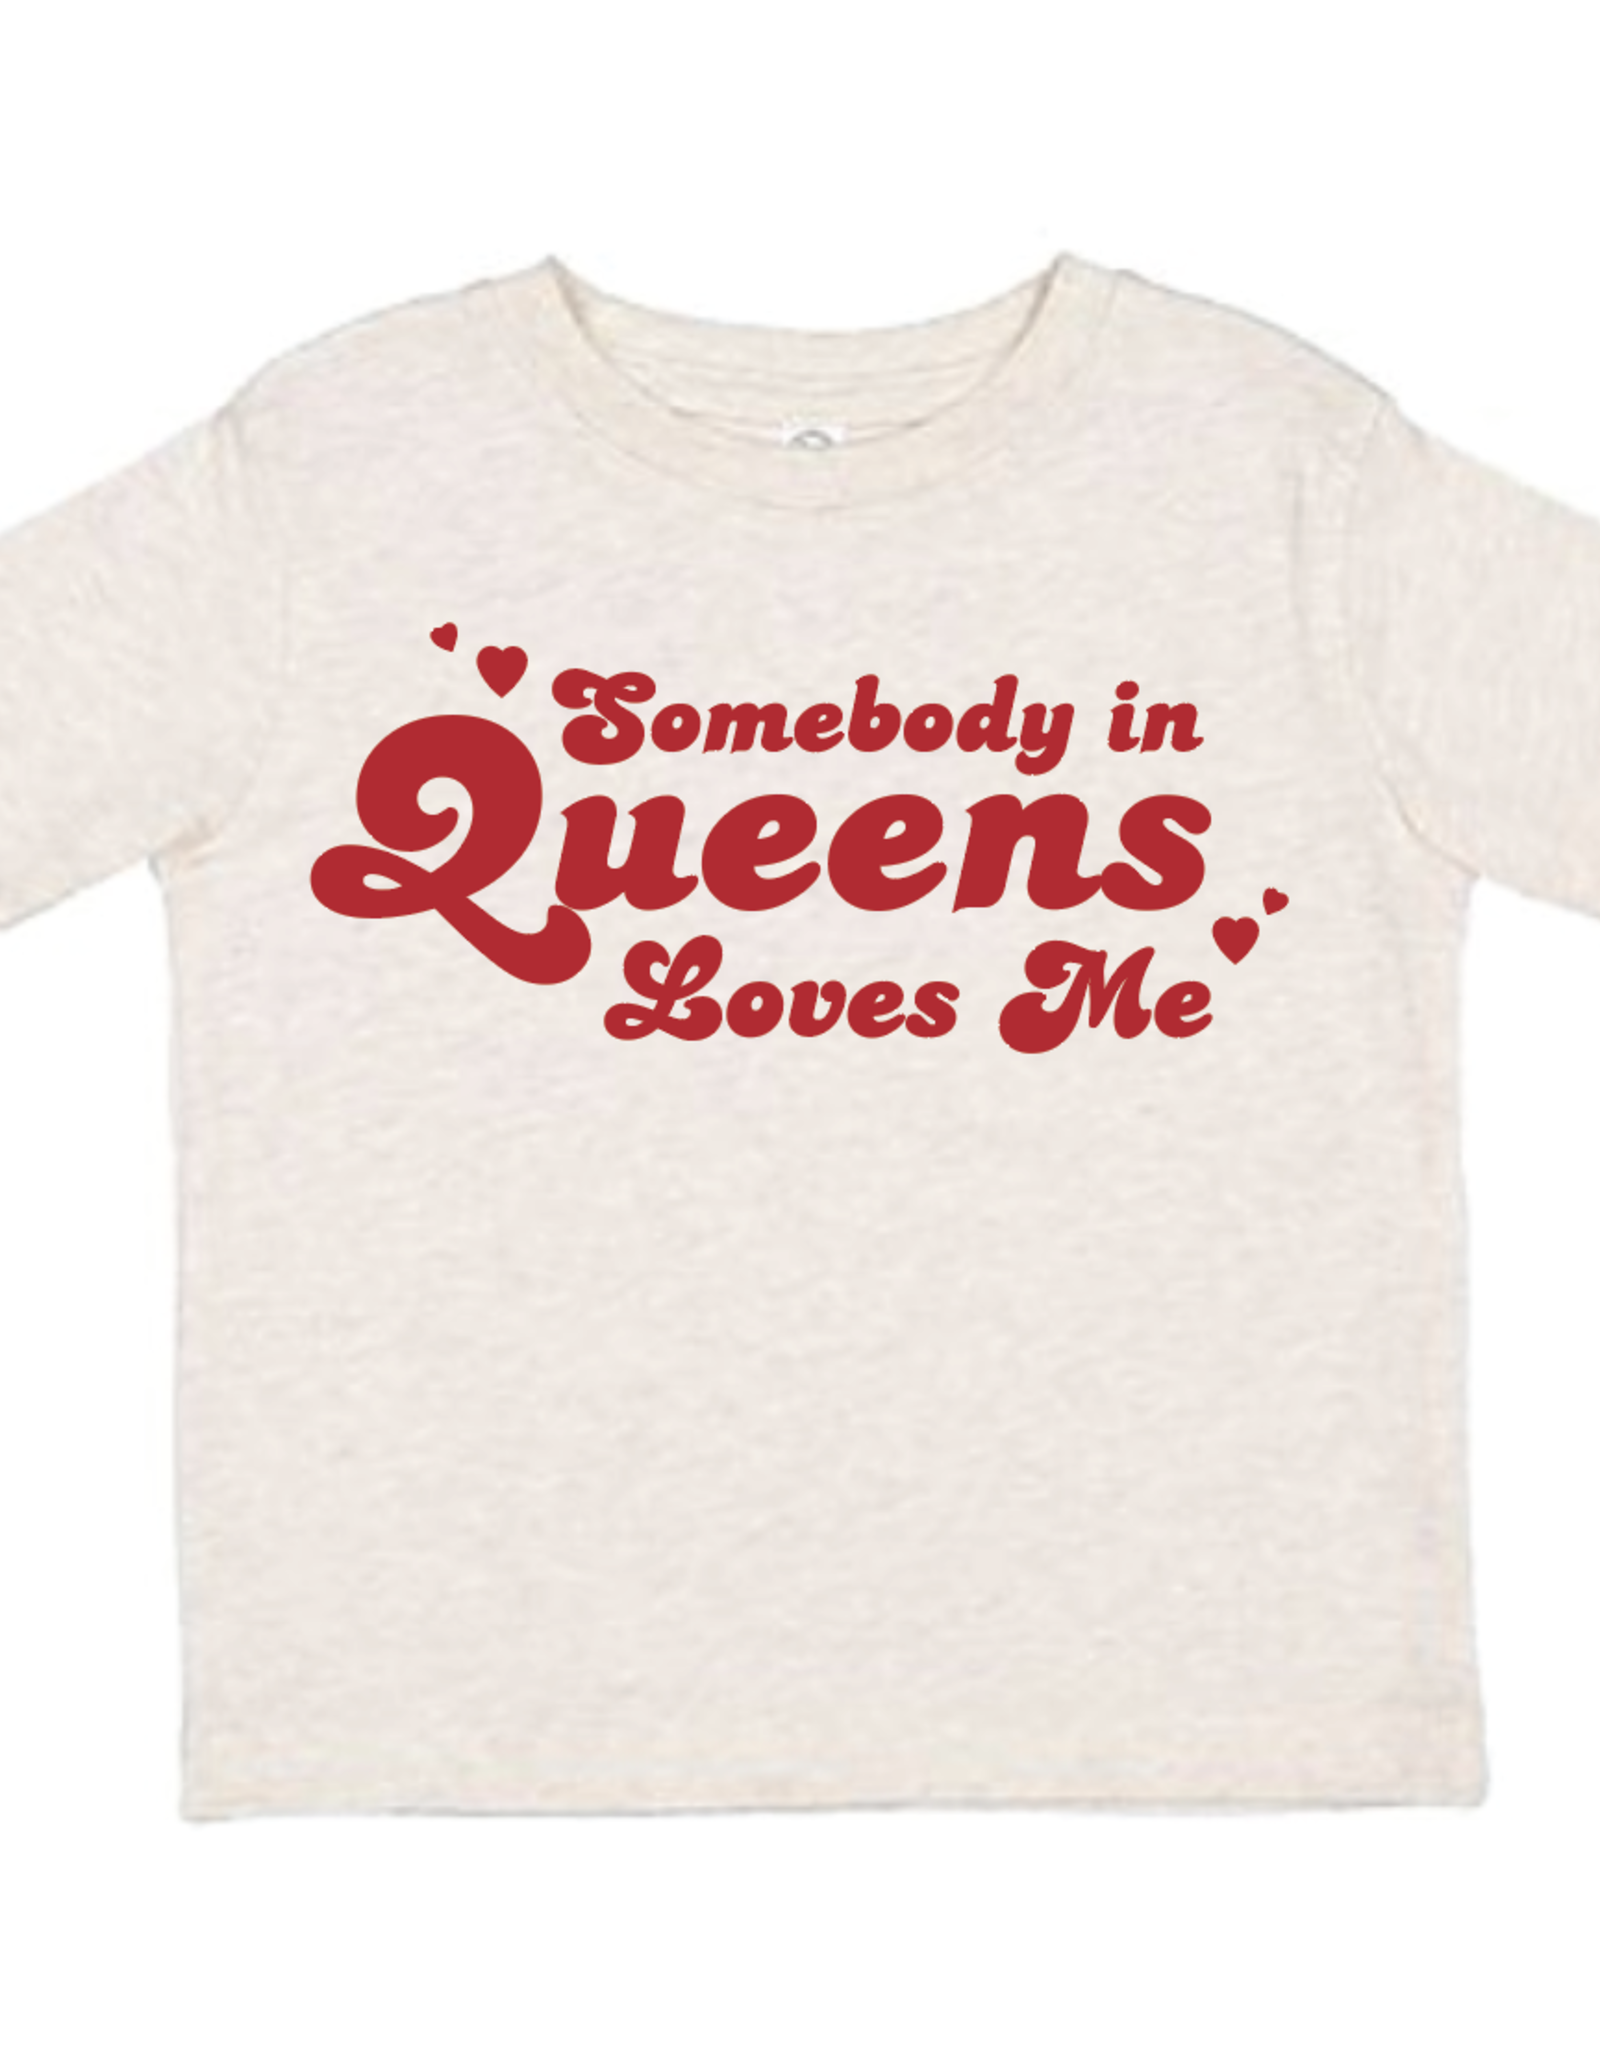 Somebody In Queens Loves Me Toddler Shirt